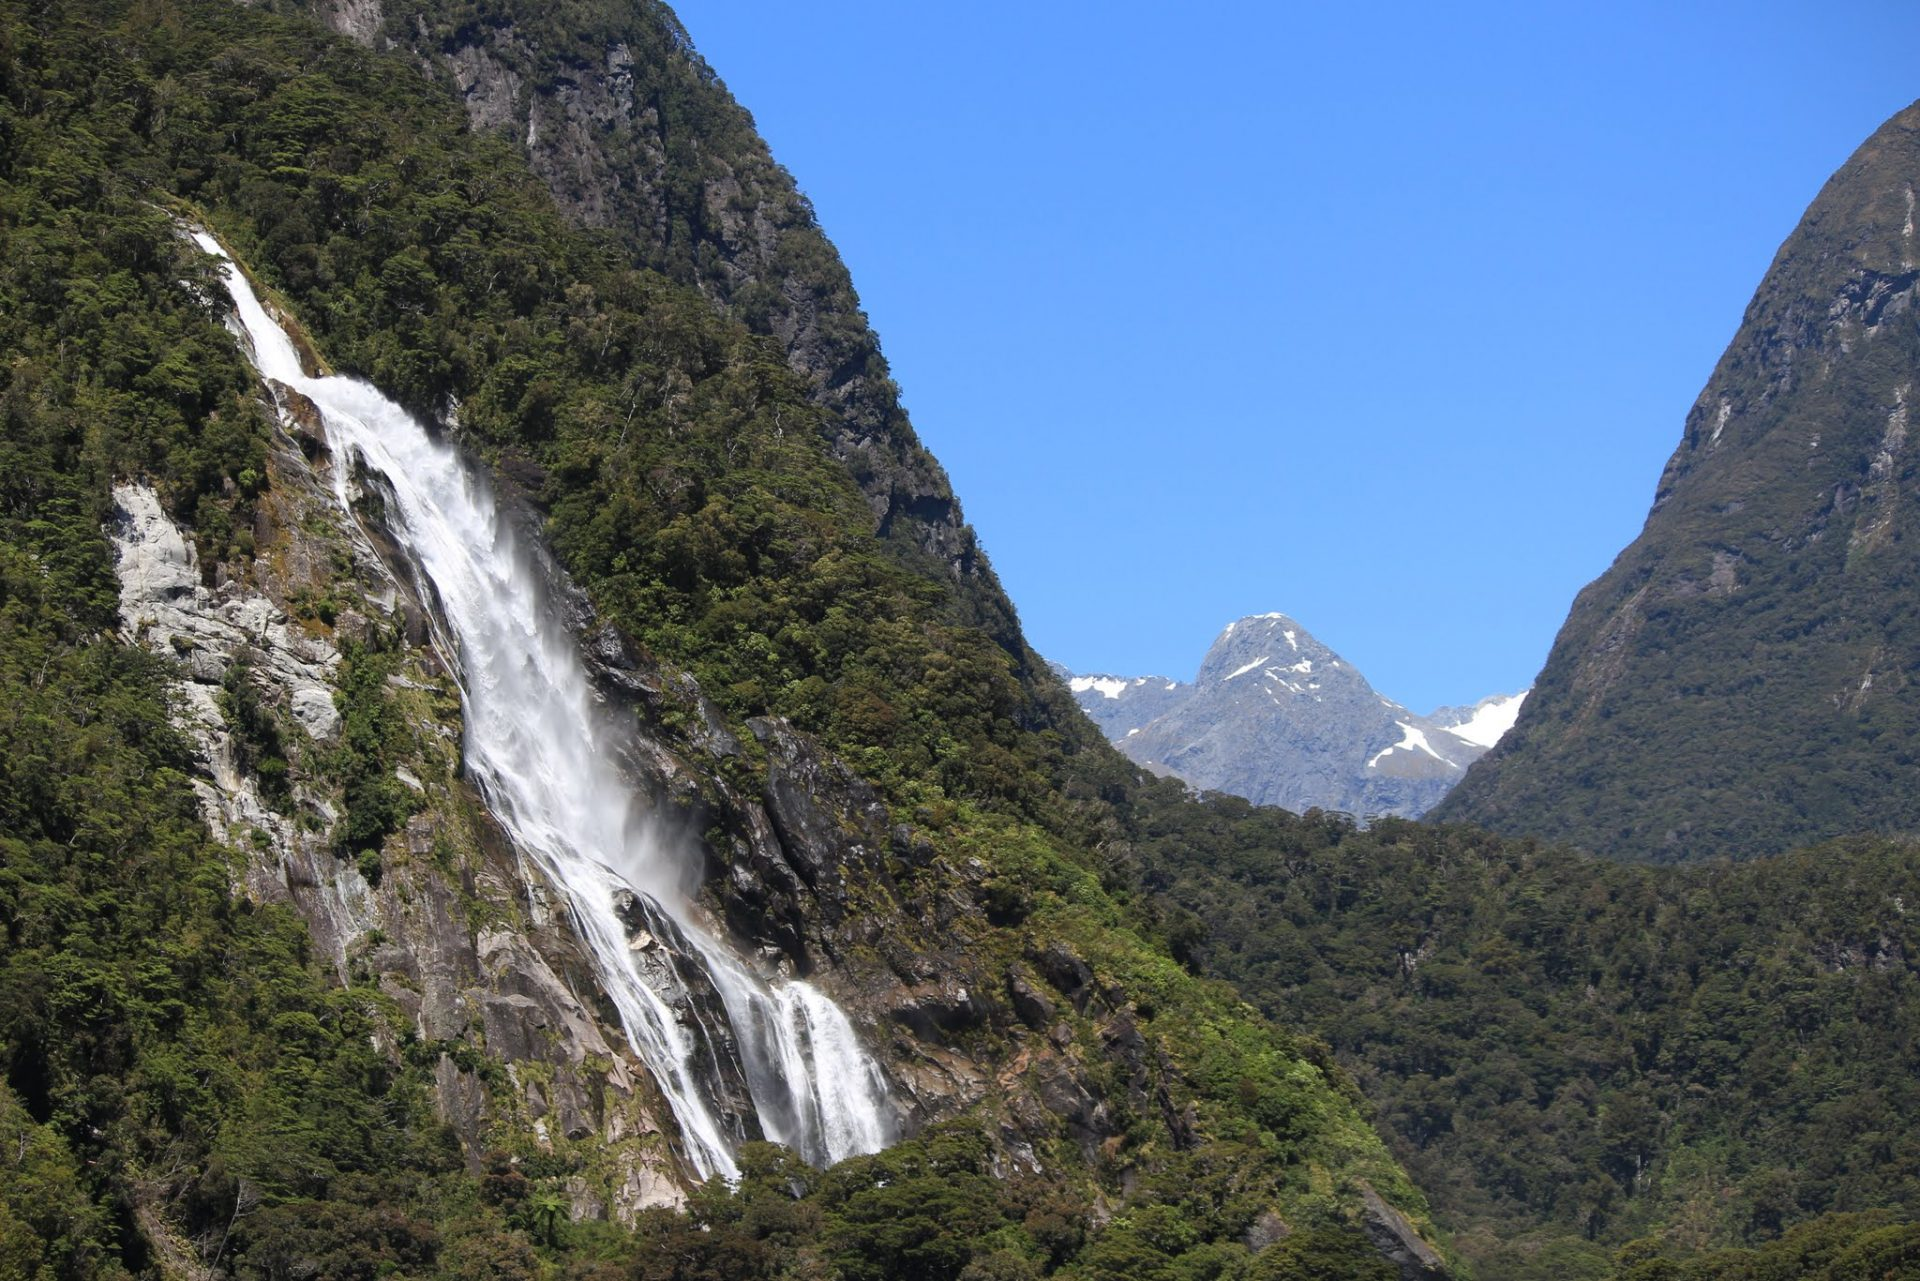 waterfalls mountains new zealand - Travel Contests: September 16th, 2020 - Mexico, New Zealand, Sicily, & more